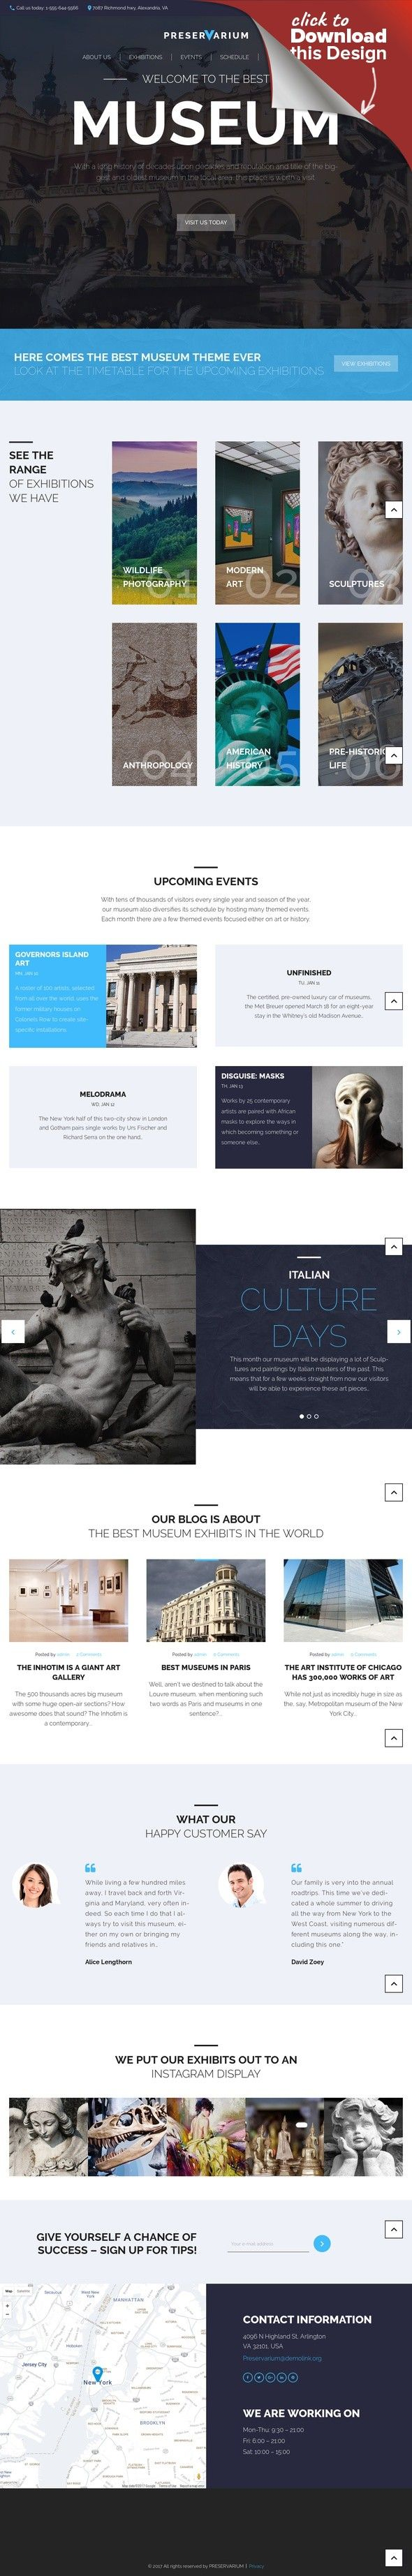 Tema de WordPress para Sitio de Museos | Wordpress, Site design and ...